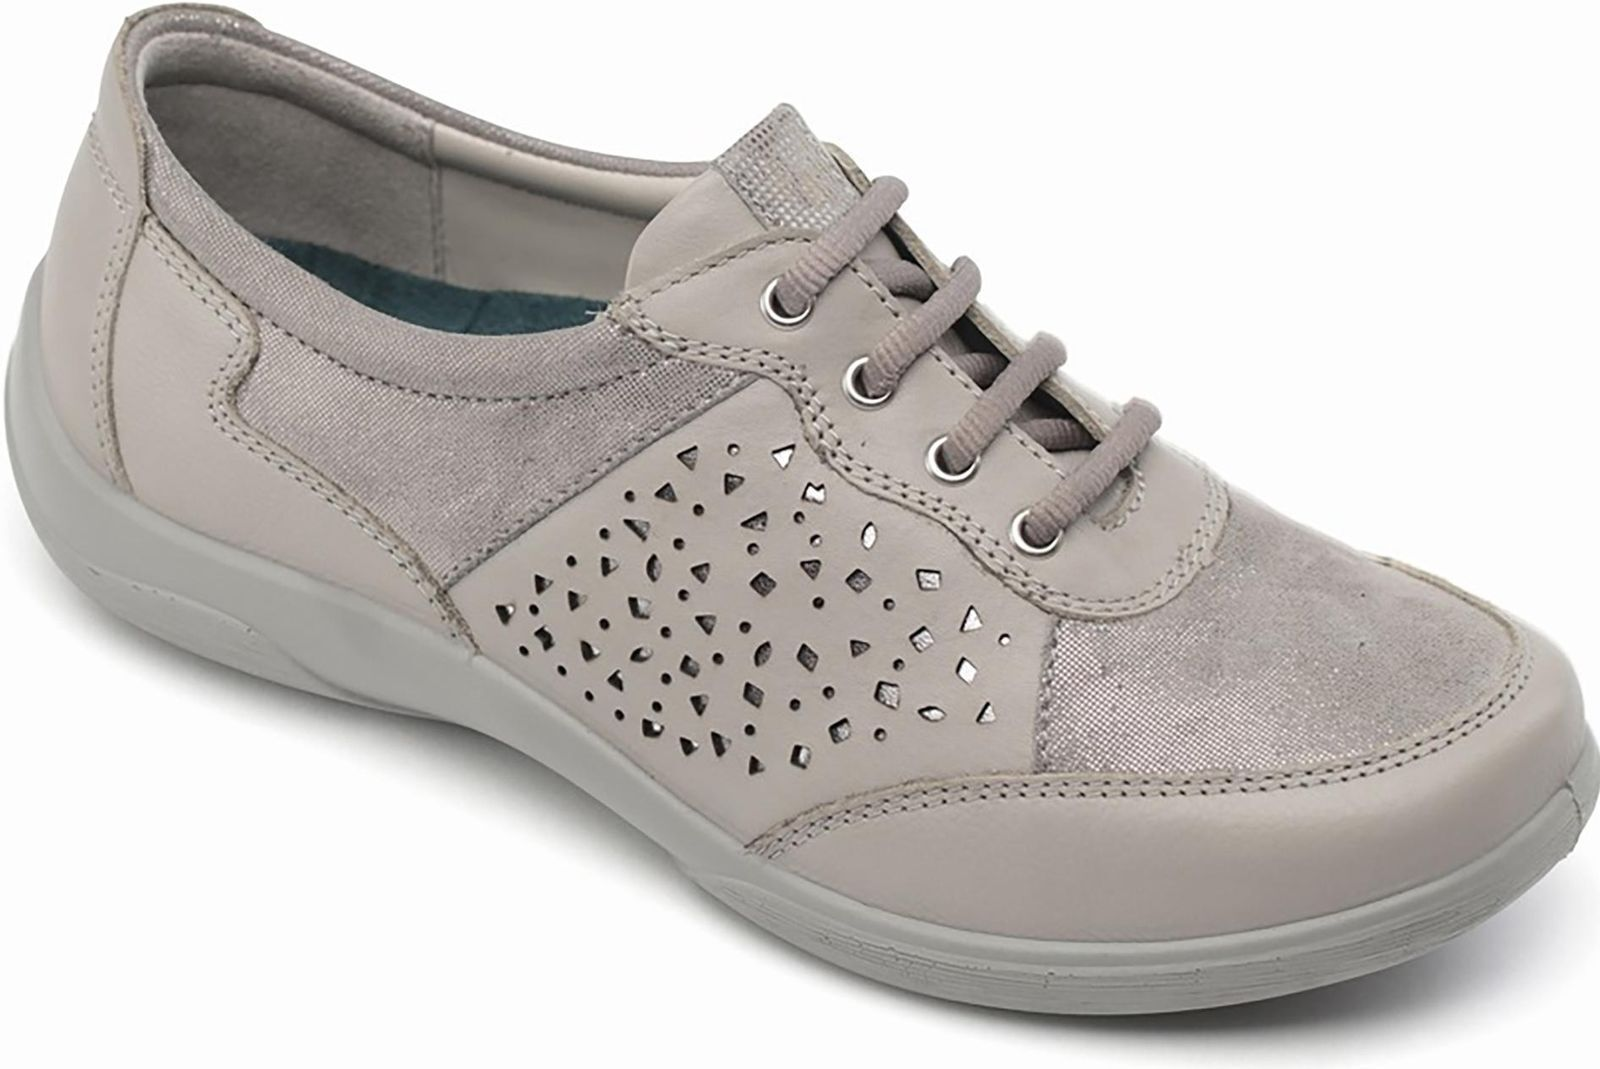 Padders Femmes Lacets Chaussures  HARPE